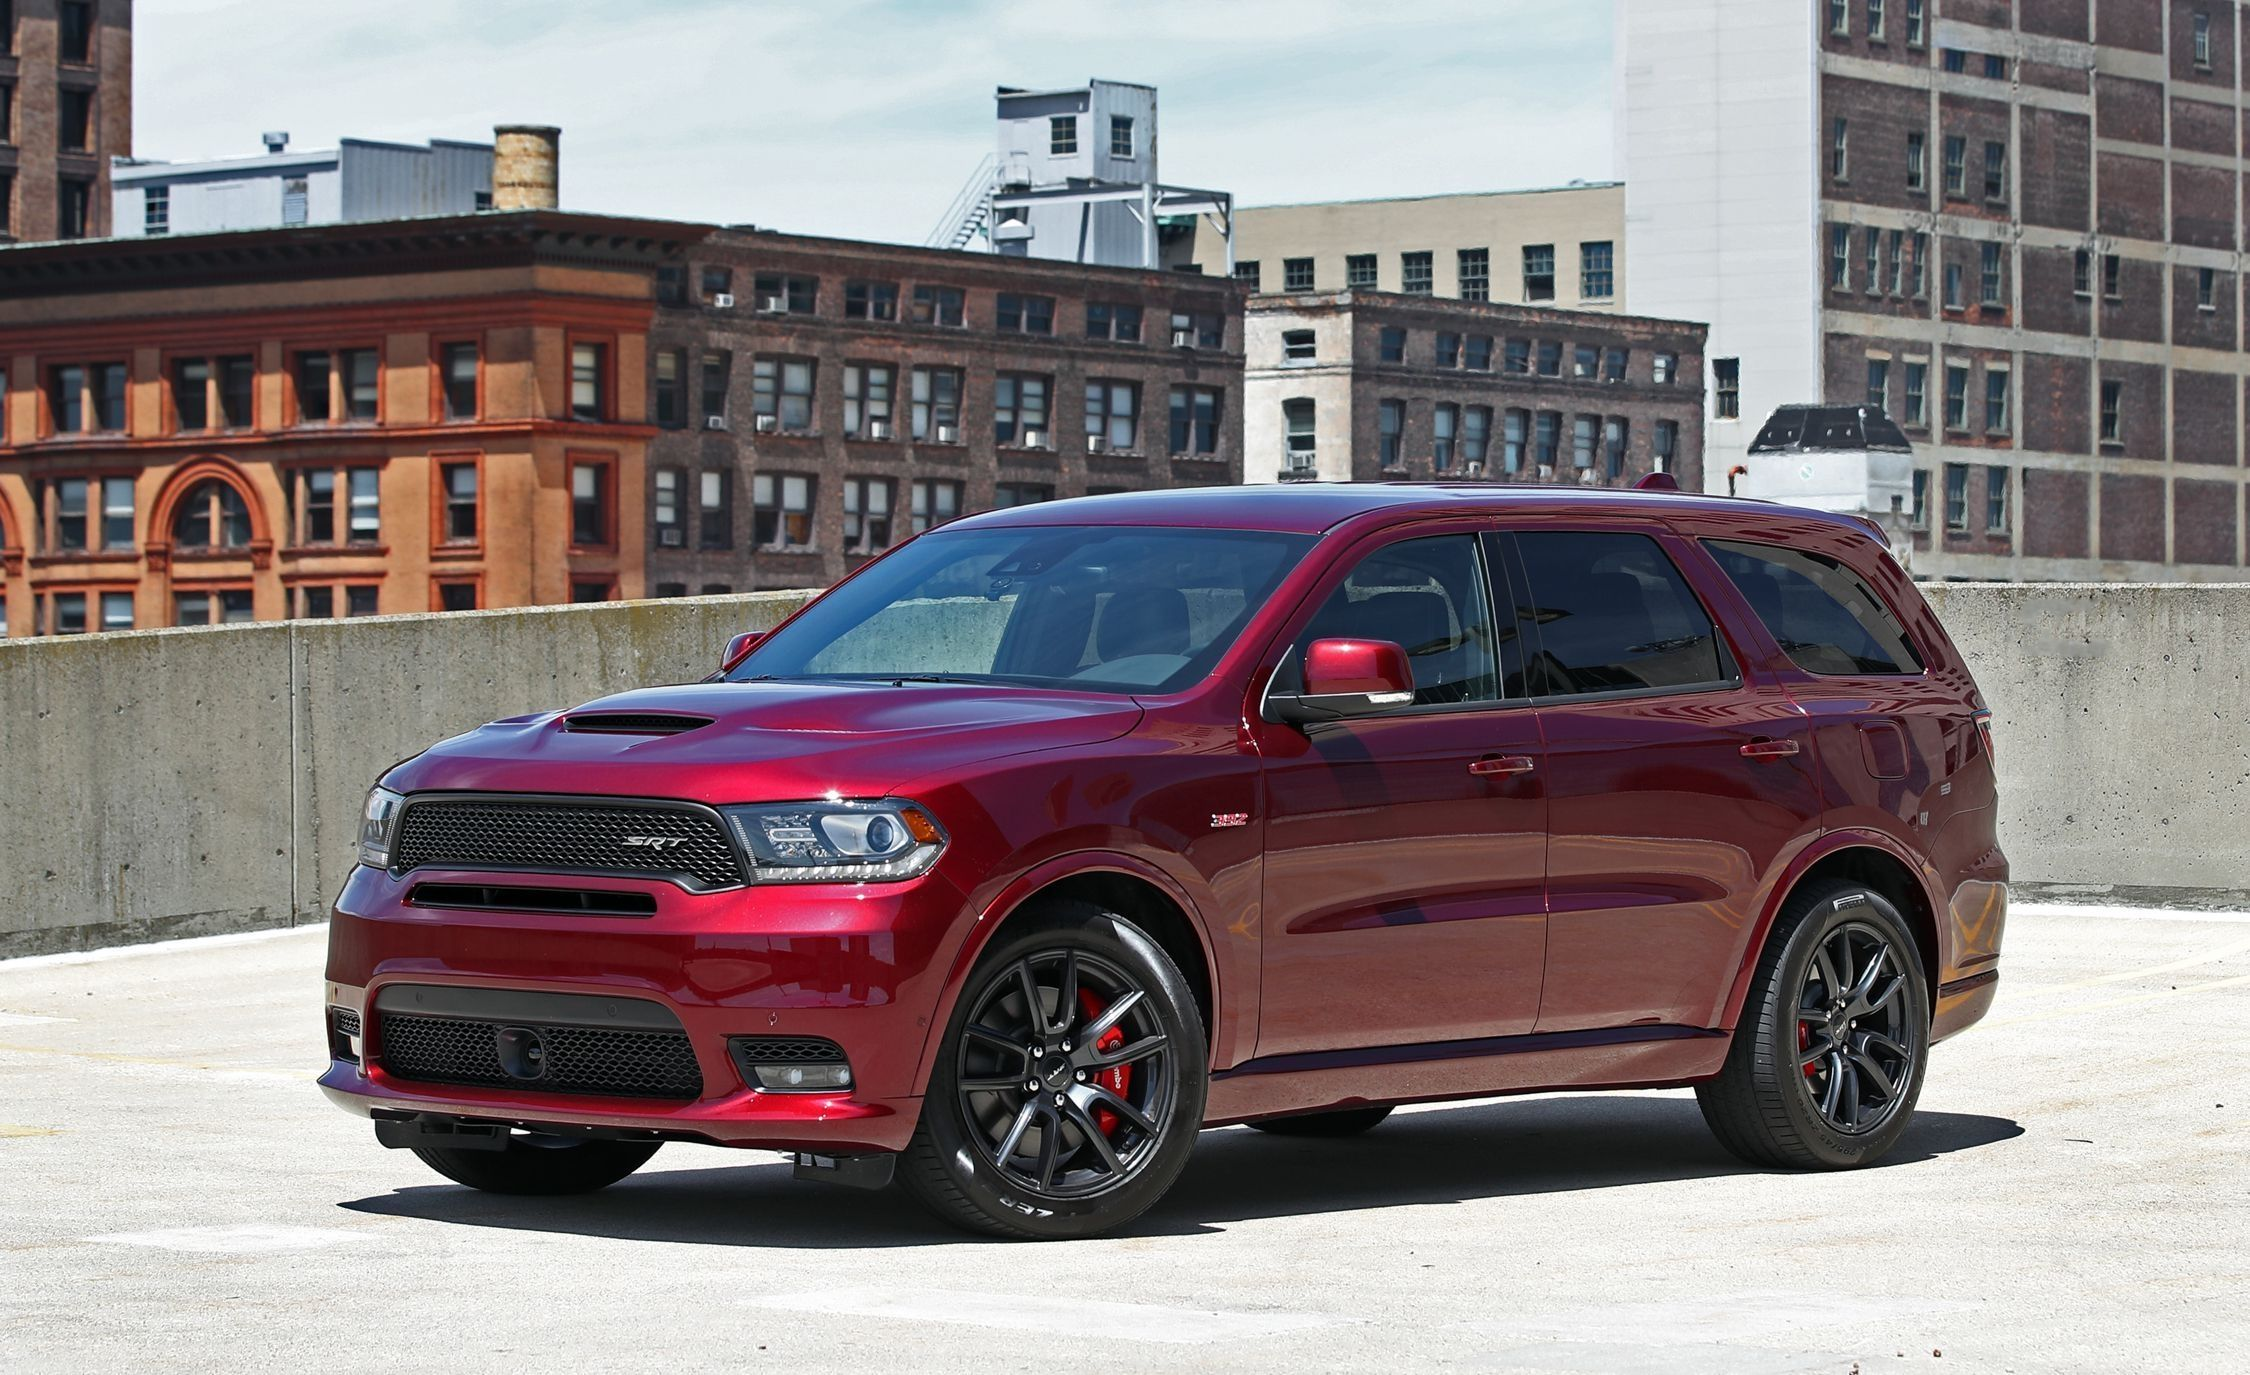 New Dodge Durango Srt8 Exterior And Interior Review Cars Review 2019 Dodge Durango Durango Srt8 New Dodge